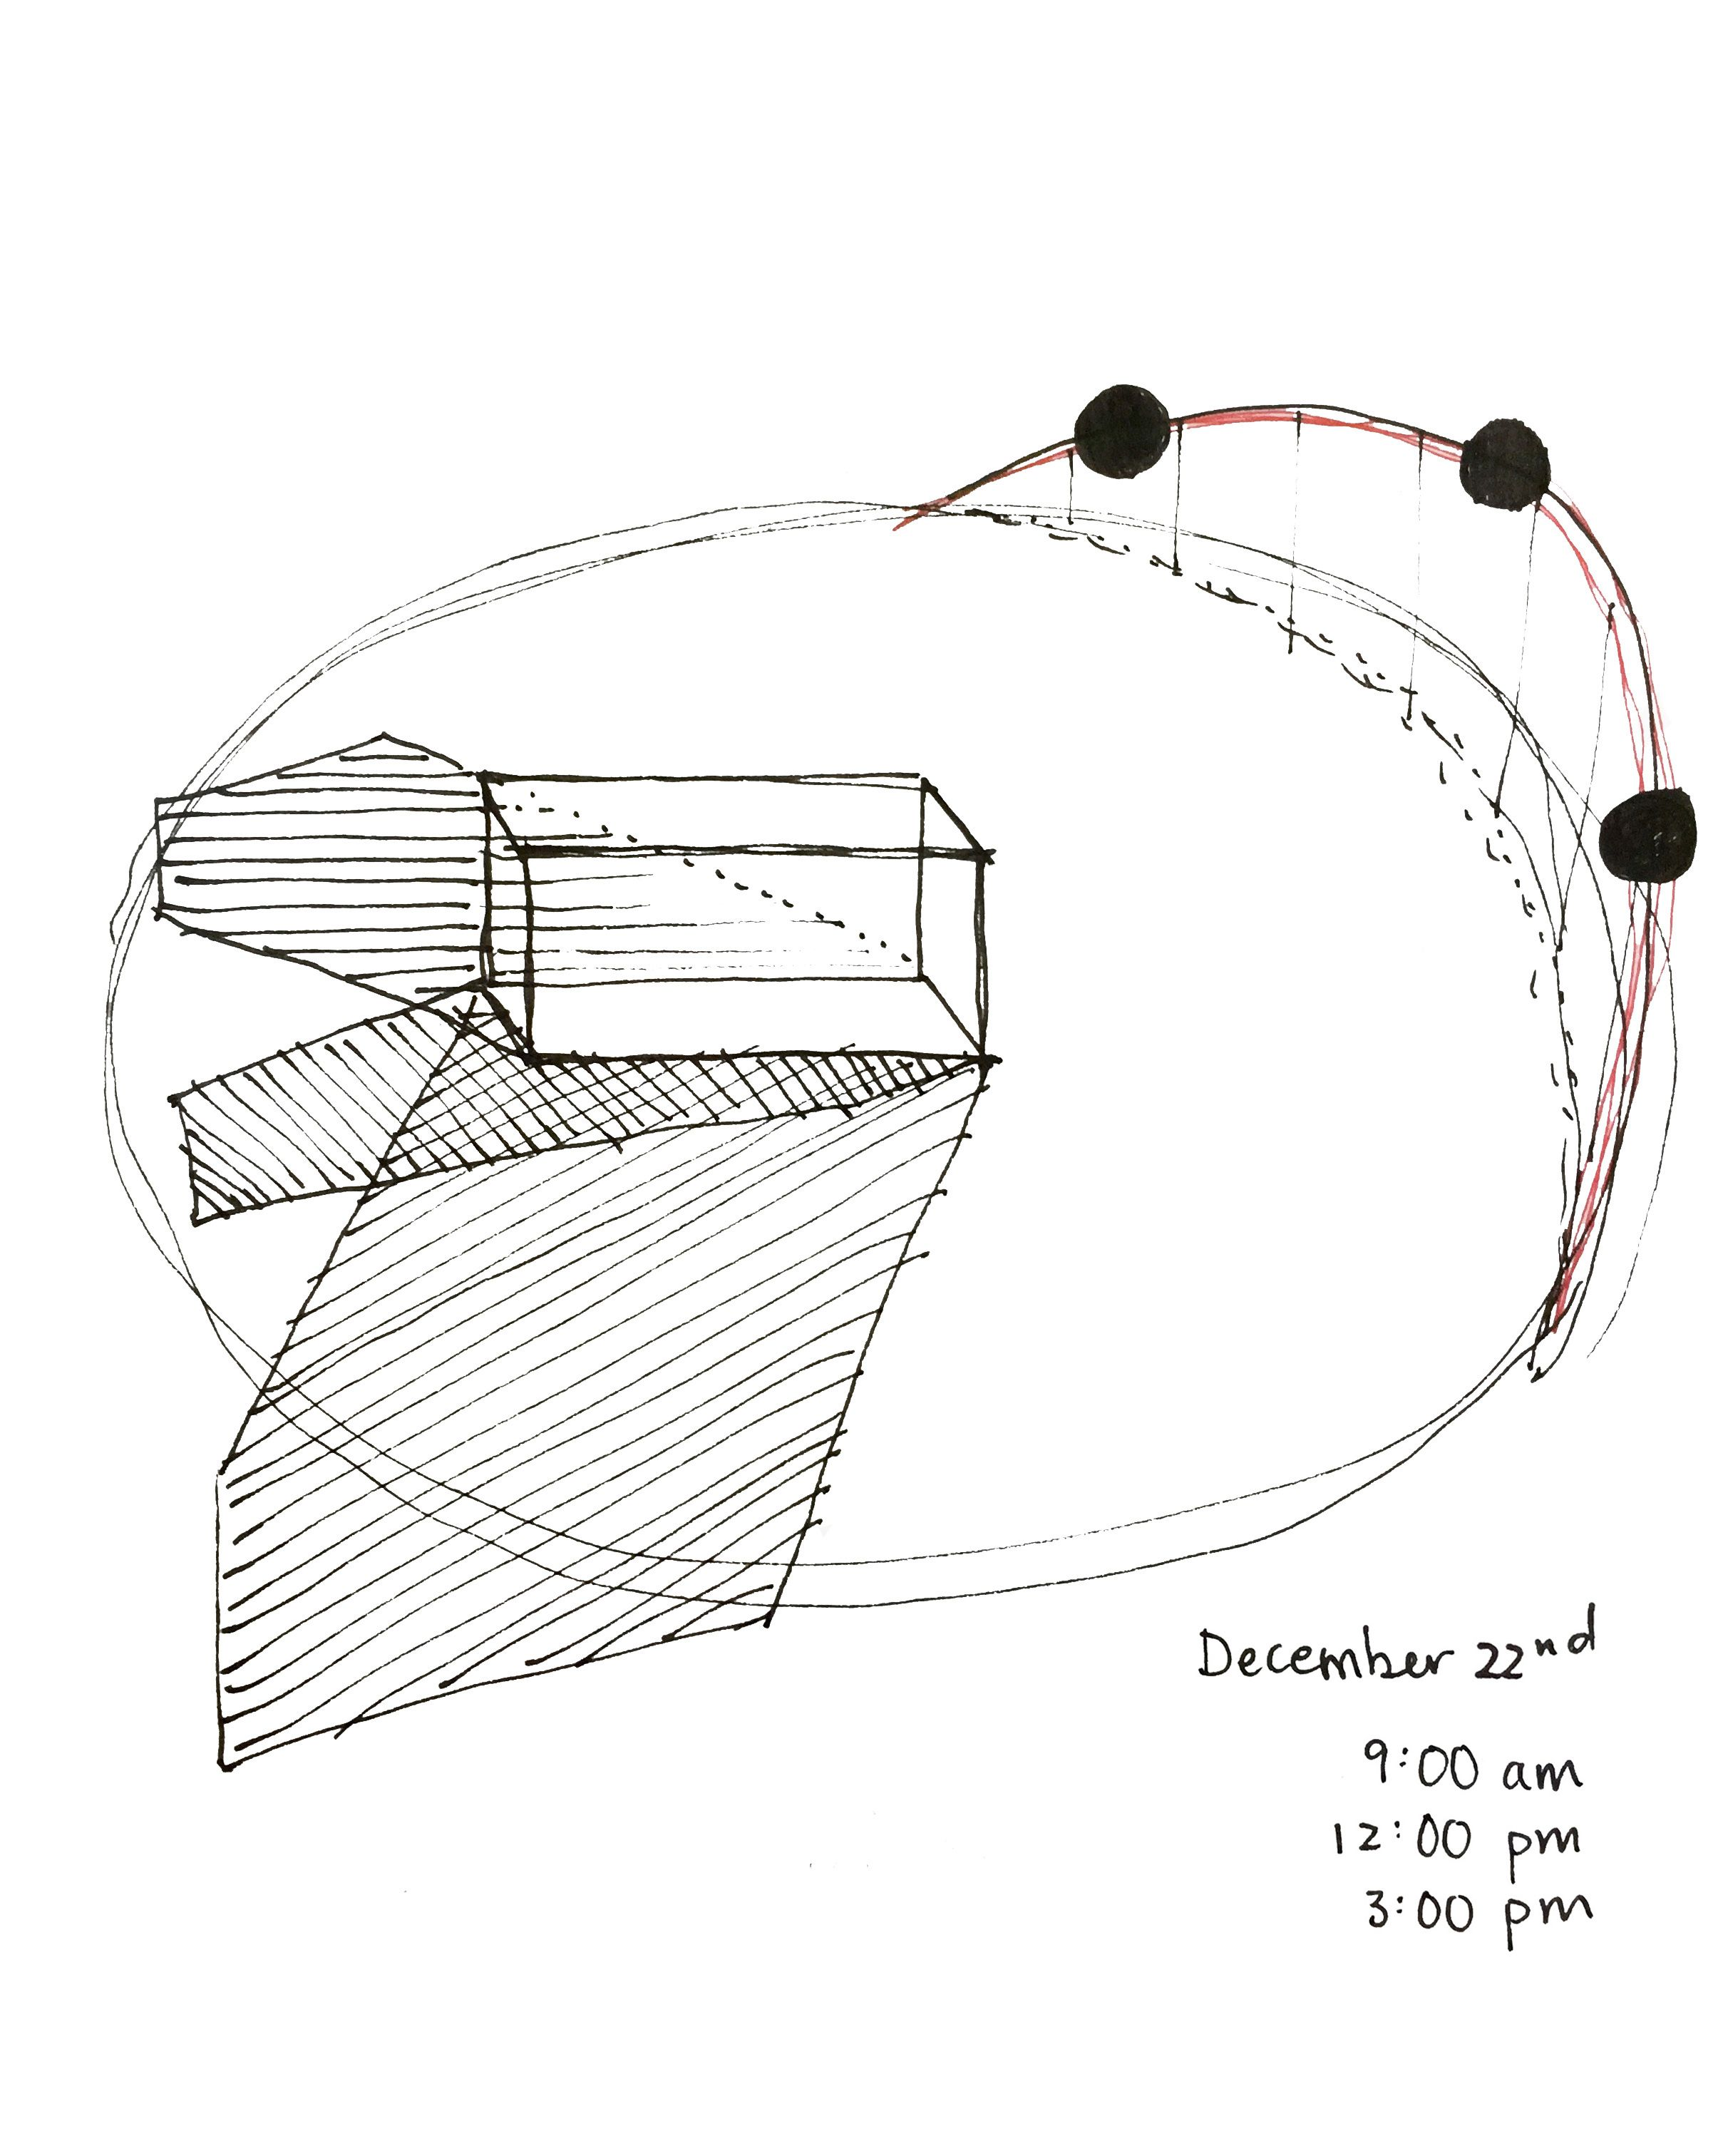 hight resolution of university of versailles science library diagram of sun path in december kellyli 48105 s15